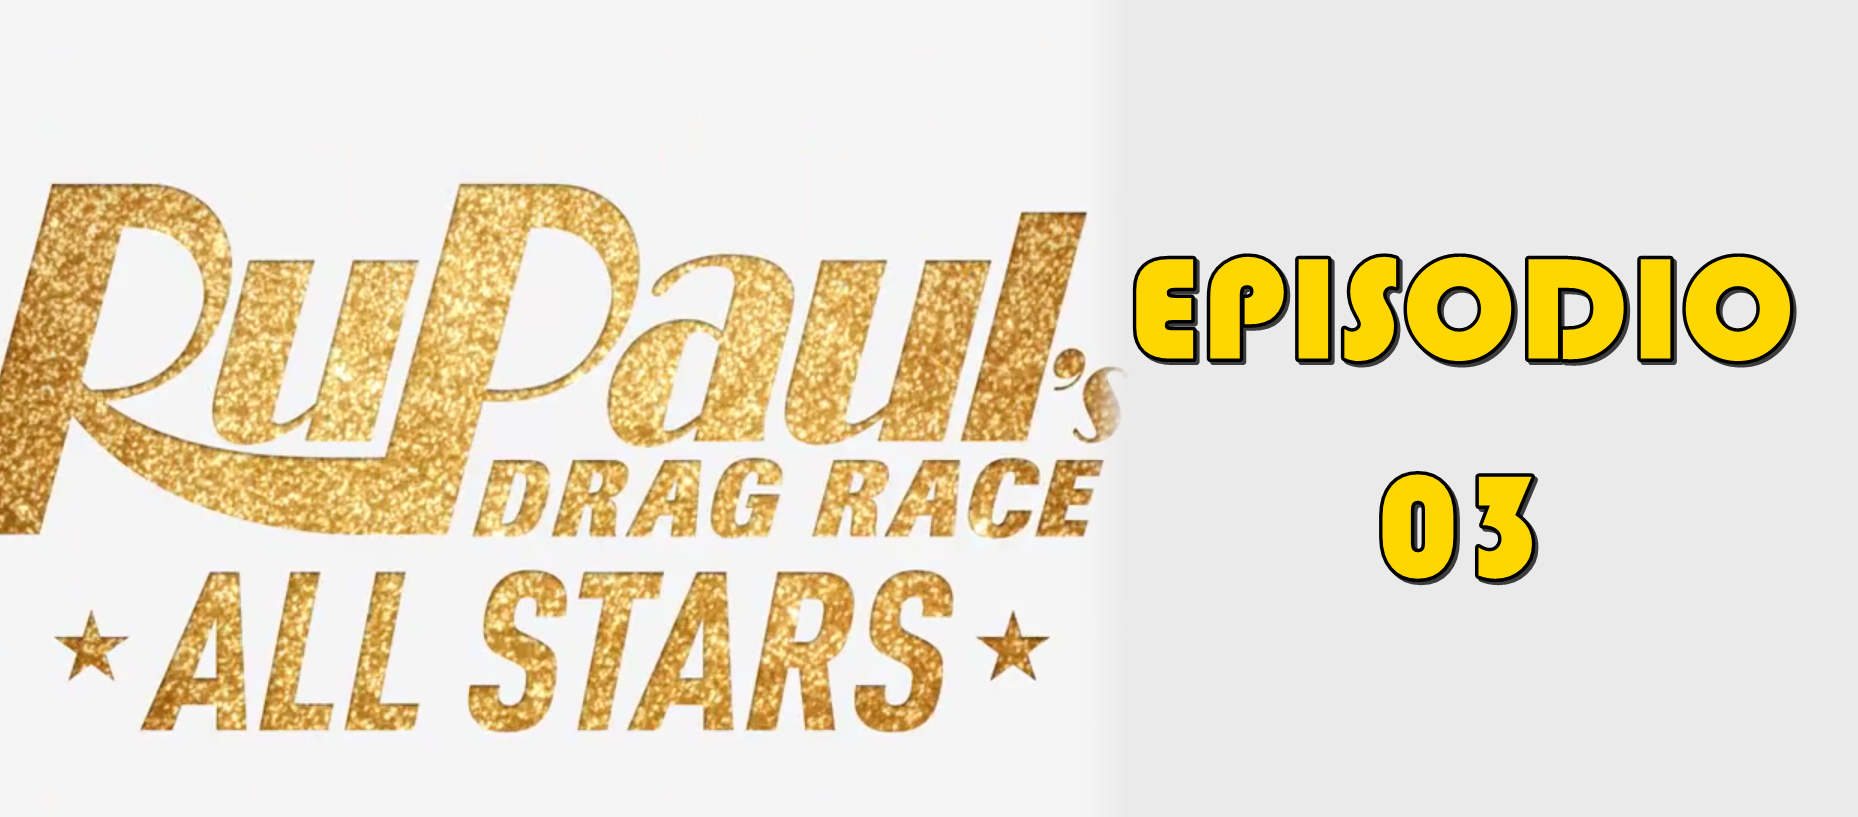 Rupaul´s Drag Race All Stars 3 Episodio 03